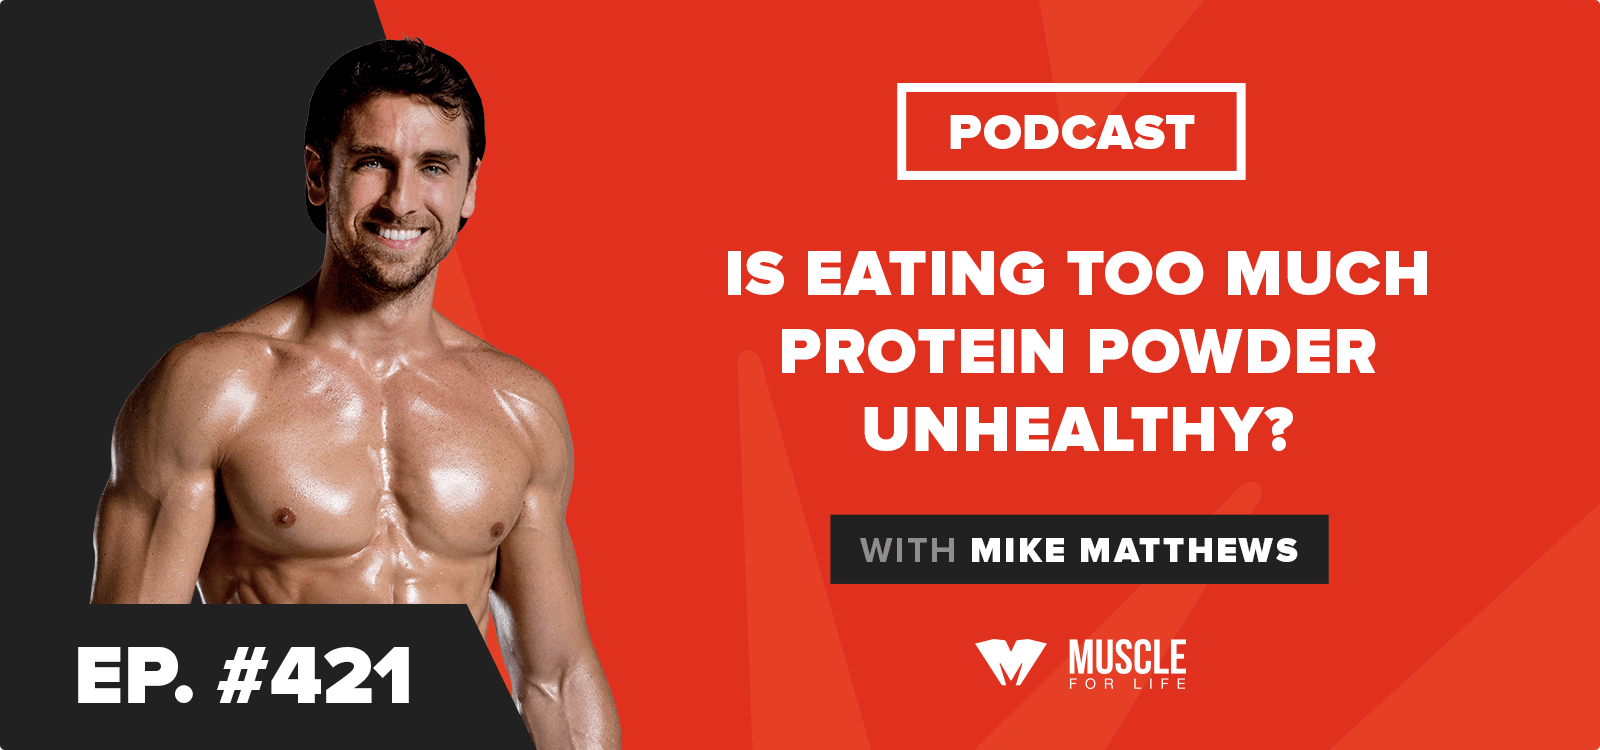 too much protein powder unhealthy podcast